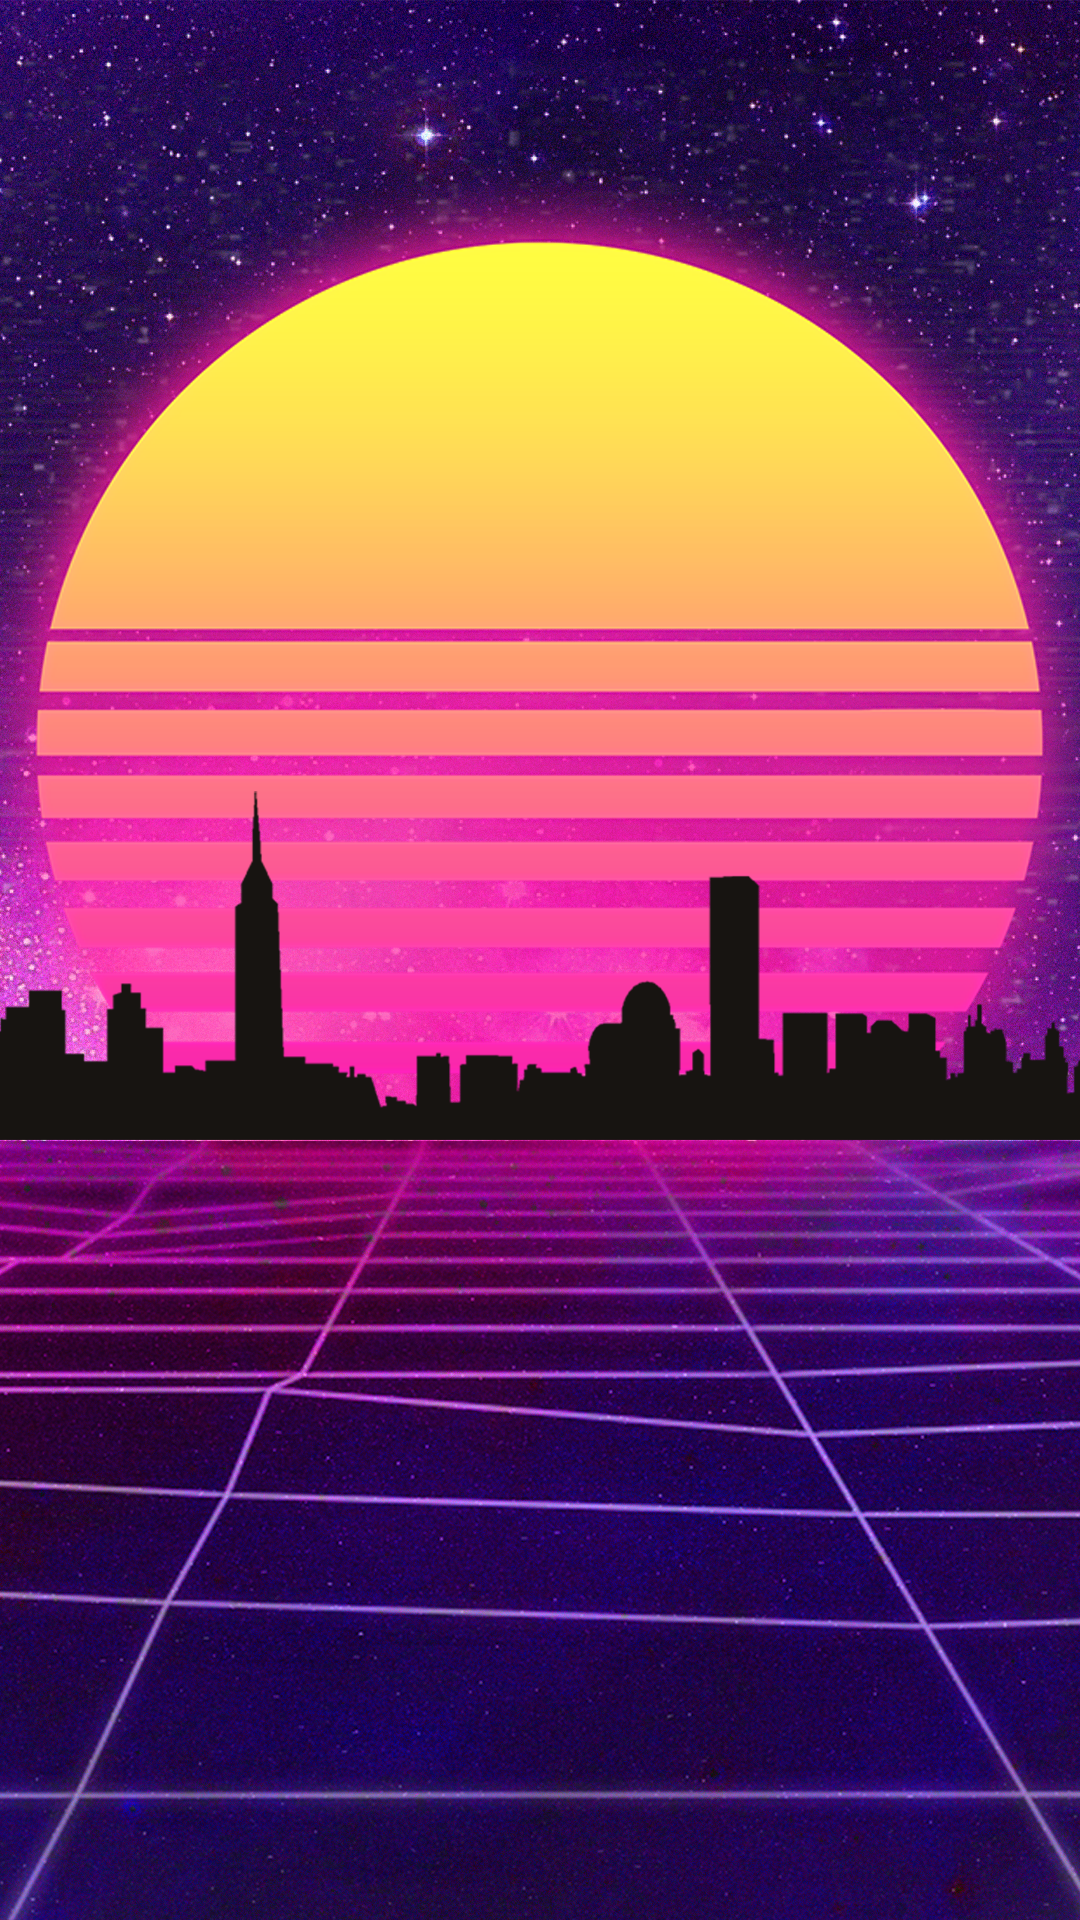 retrowave_wallpaper__mobile__by_halukaliev-dbpr11l.png